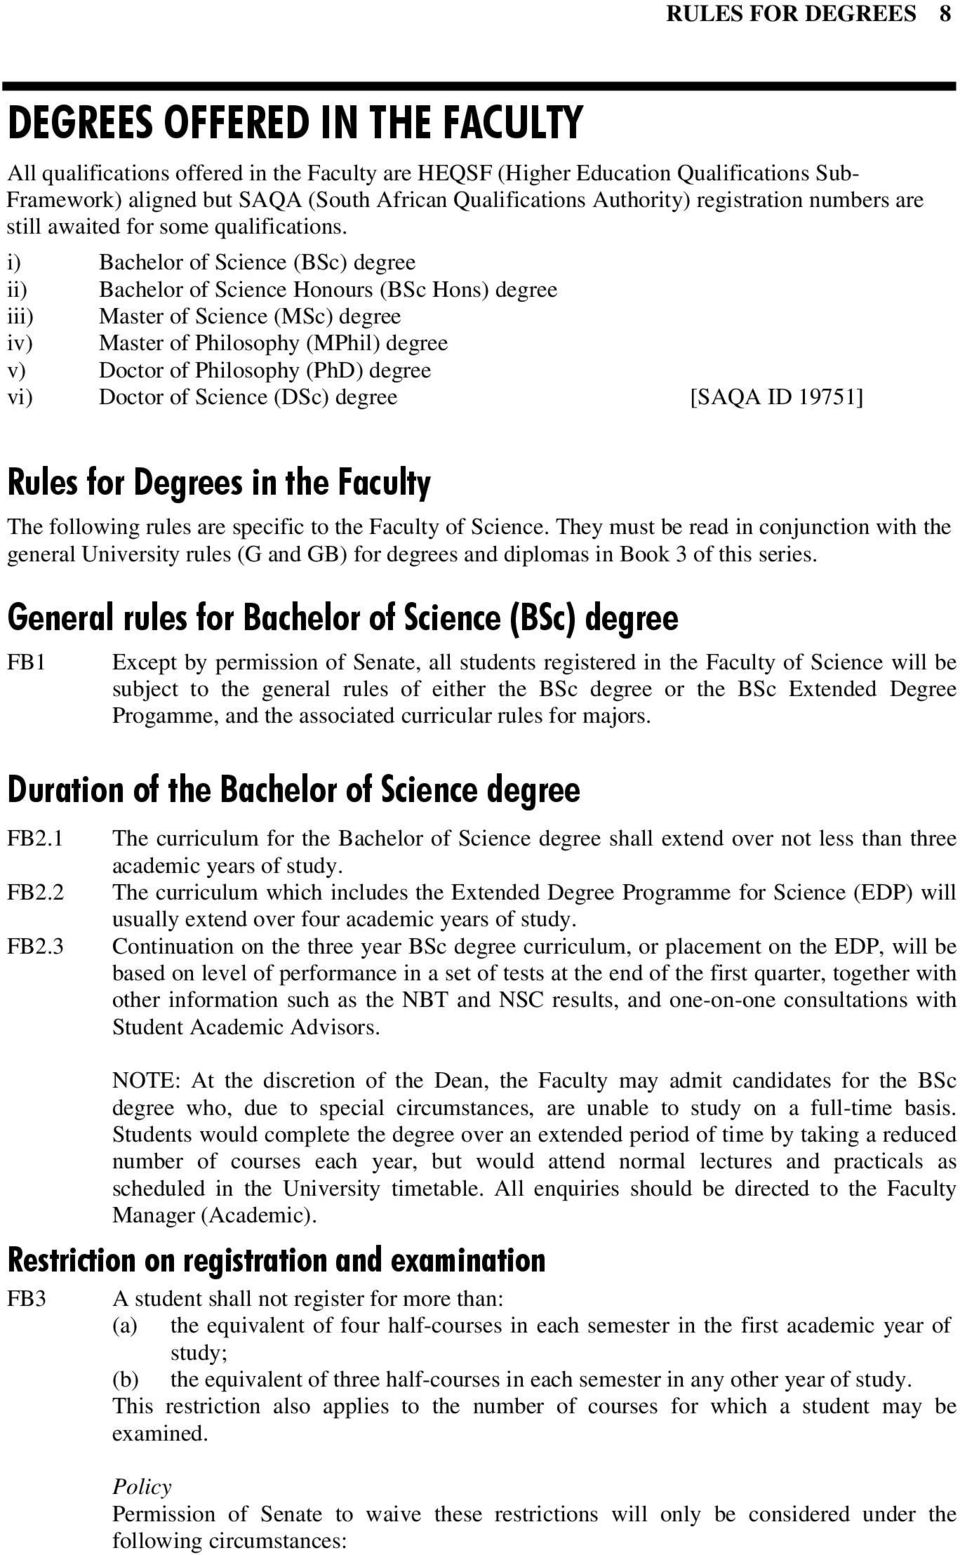 i) Bachelor of Science (BSc) degree ii) Bachelor of Science Honours (BSc Hons) degree iii) Master of Science (MSc) degree iv) Master of Philosophy (MPhil) degree v) Doctor of Philosophy (PhD) degree